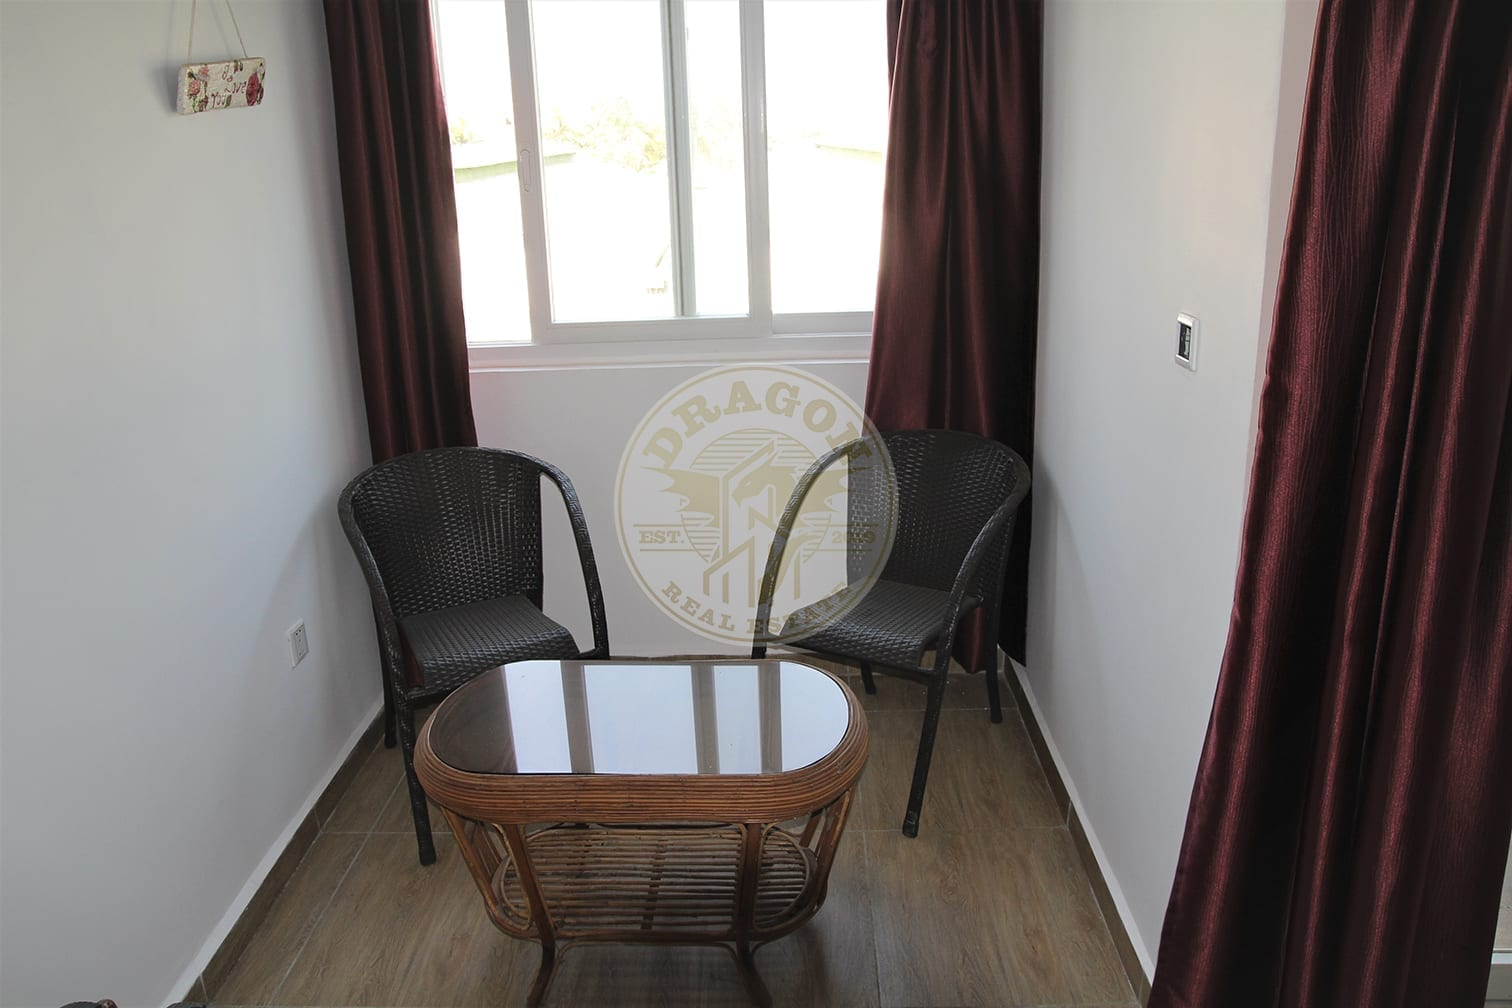 Fully-Furnished Studio Apartment for 300 Dollar a Month. Sihanoukville Cambodia Property Sale